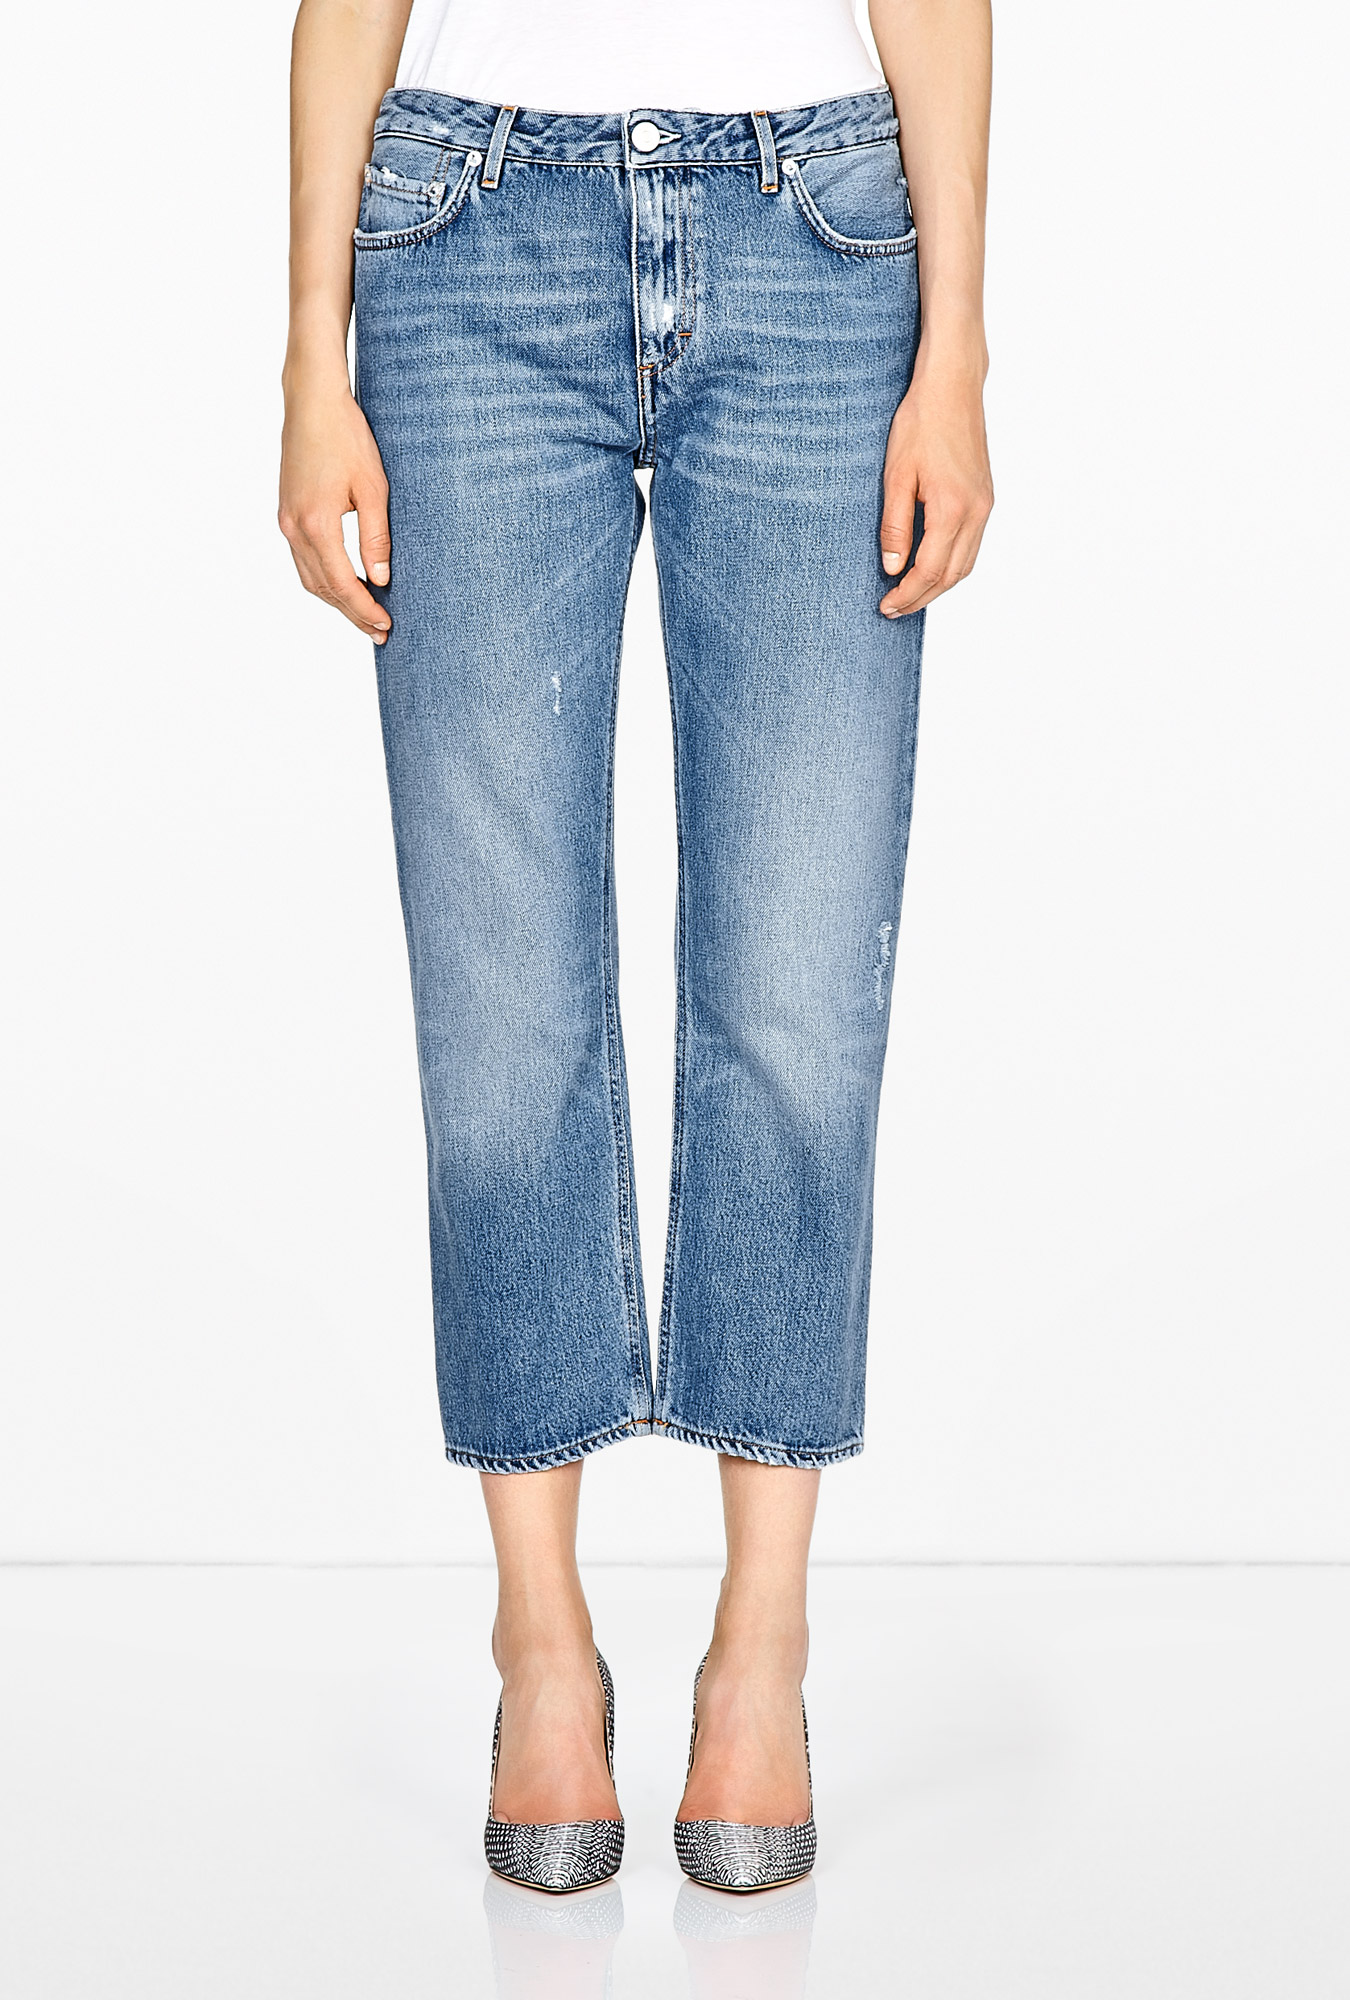 acne studios pop vintage boyfriend cropped jeans in blue denim lyst. Black Bedroom Furniture Sets. Home Design Ideas